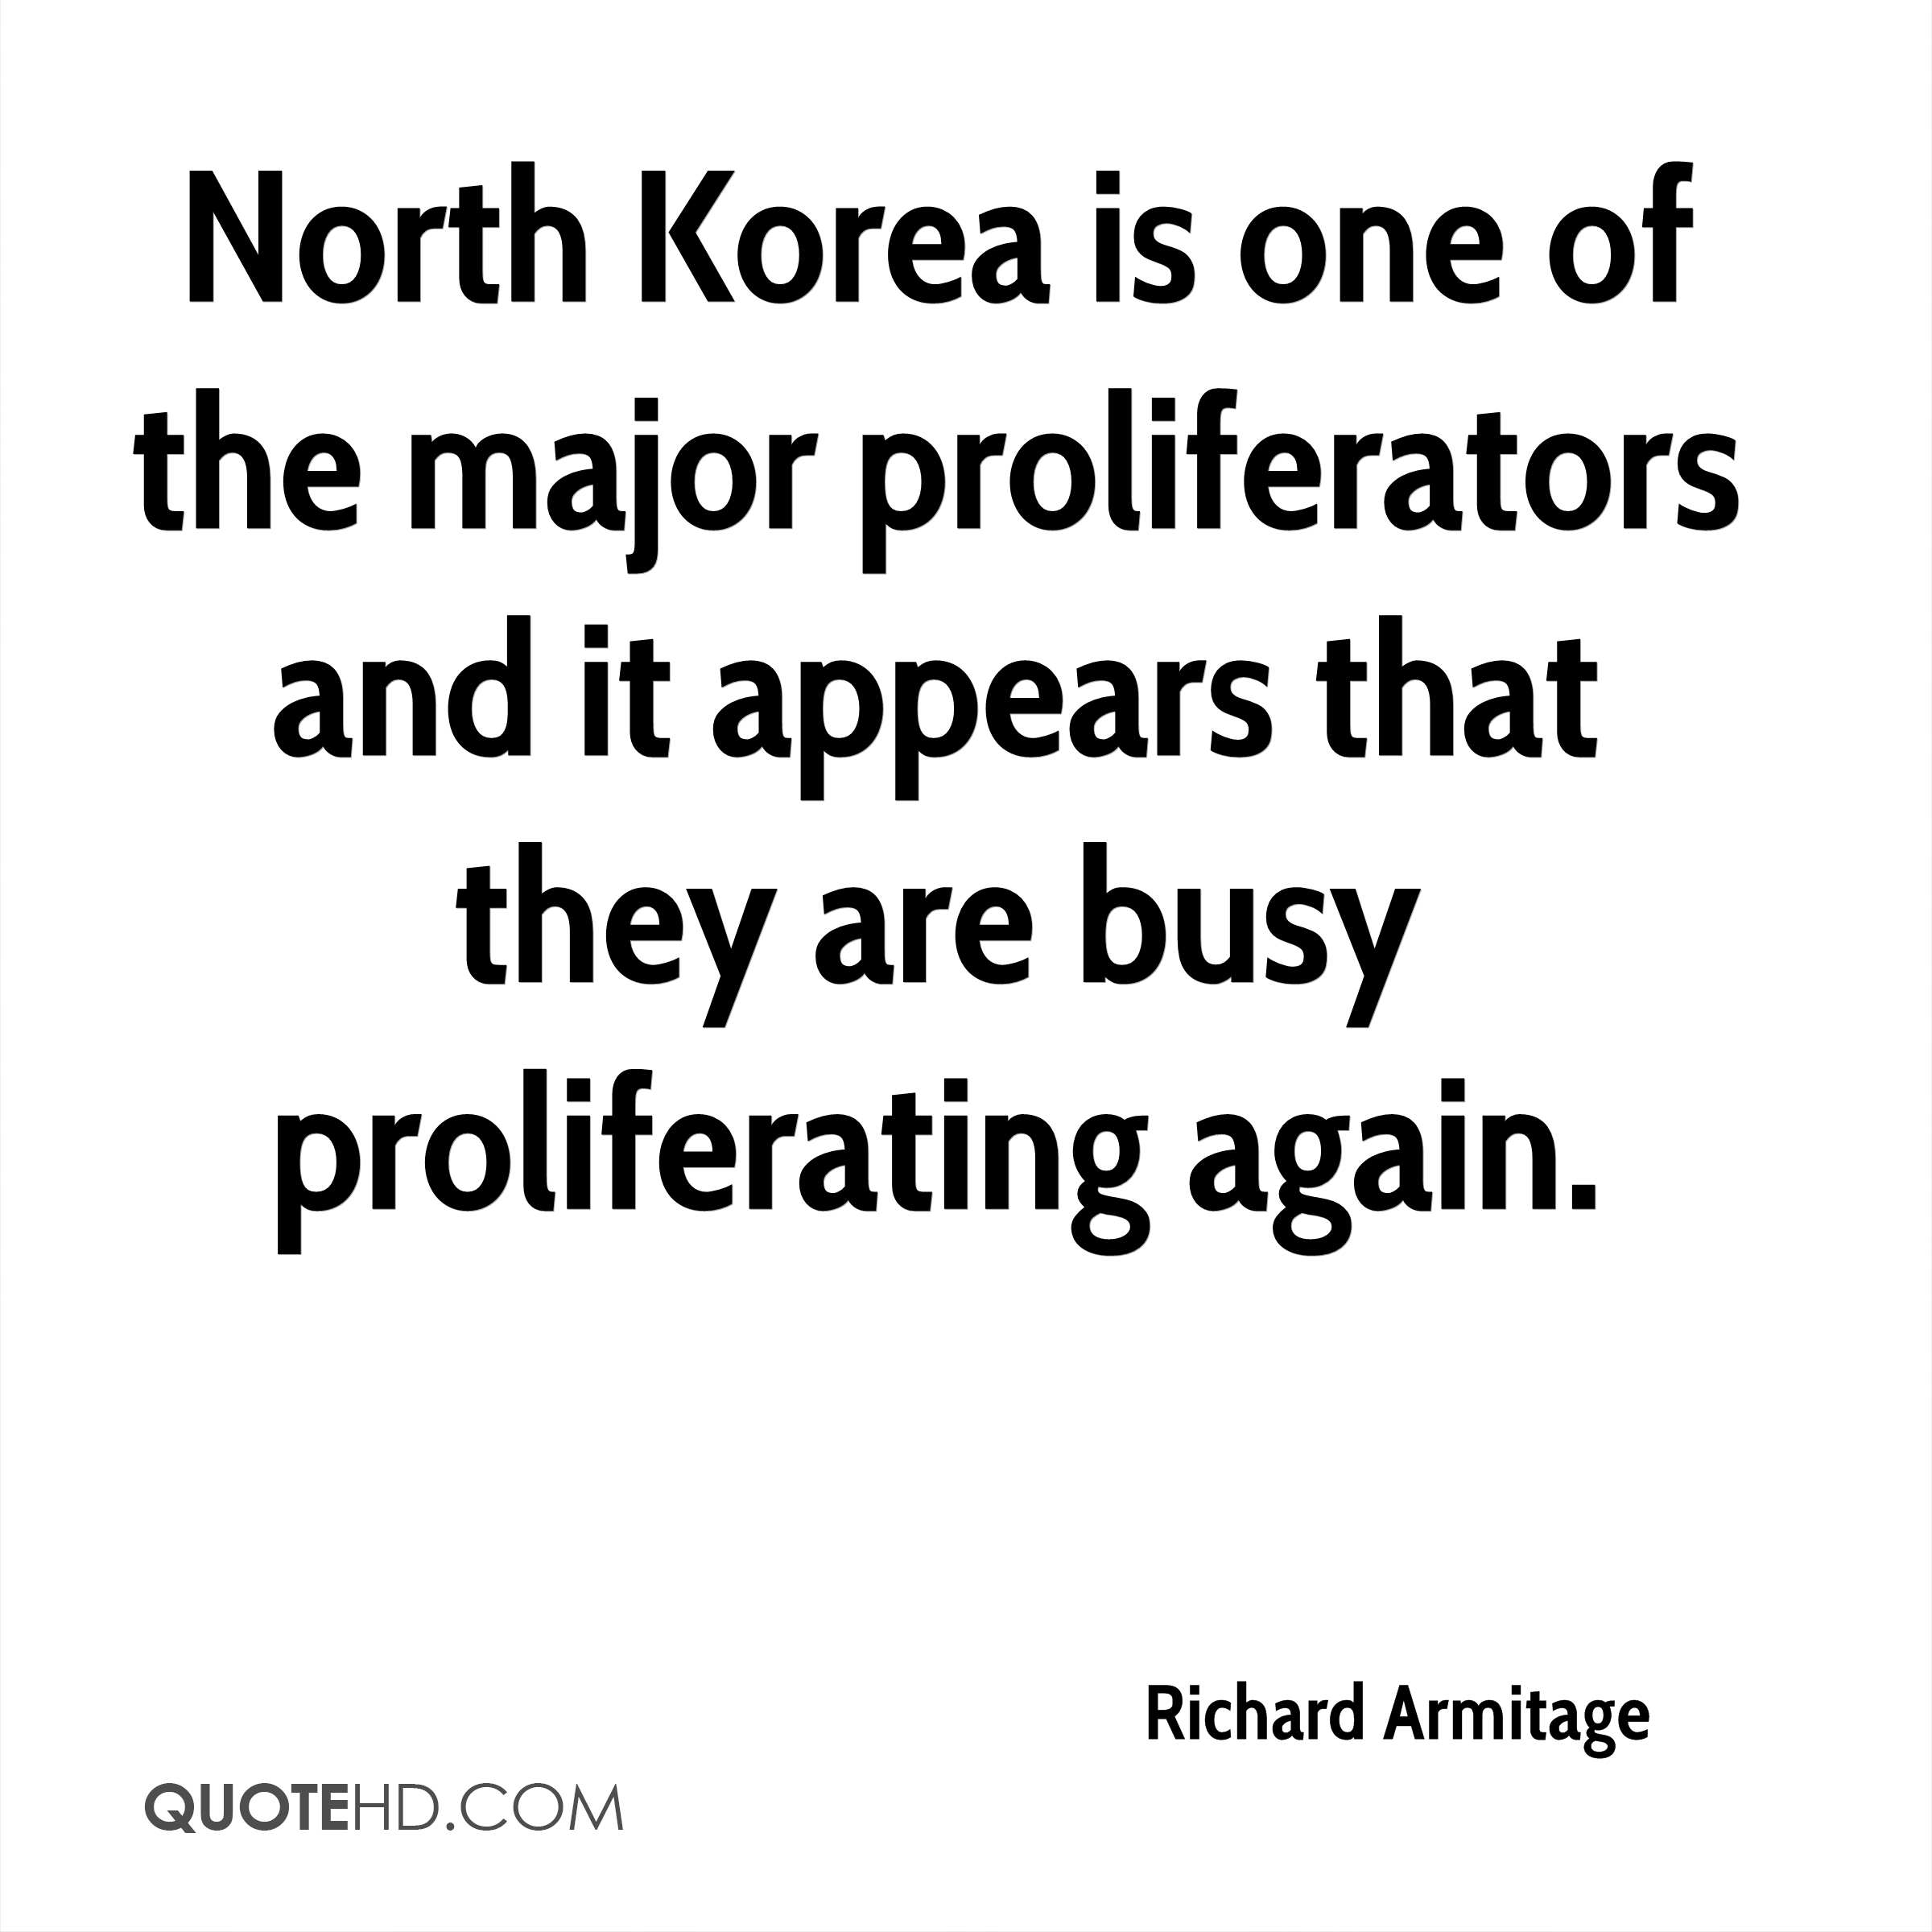 North Korea is one of the major proliferators and it appears that they are busy proliferating again.